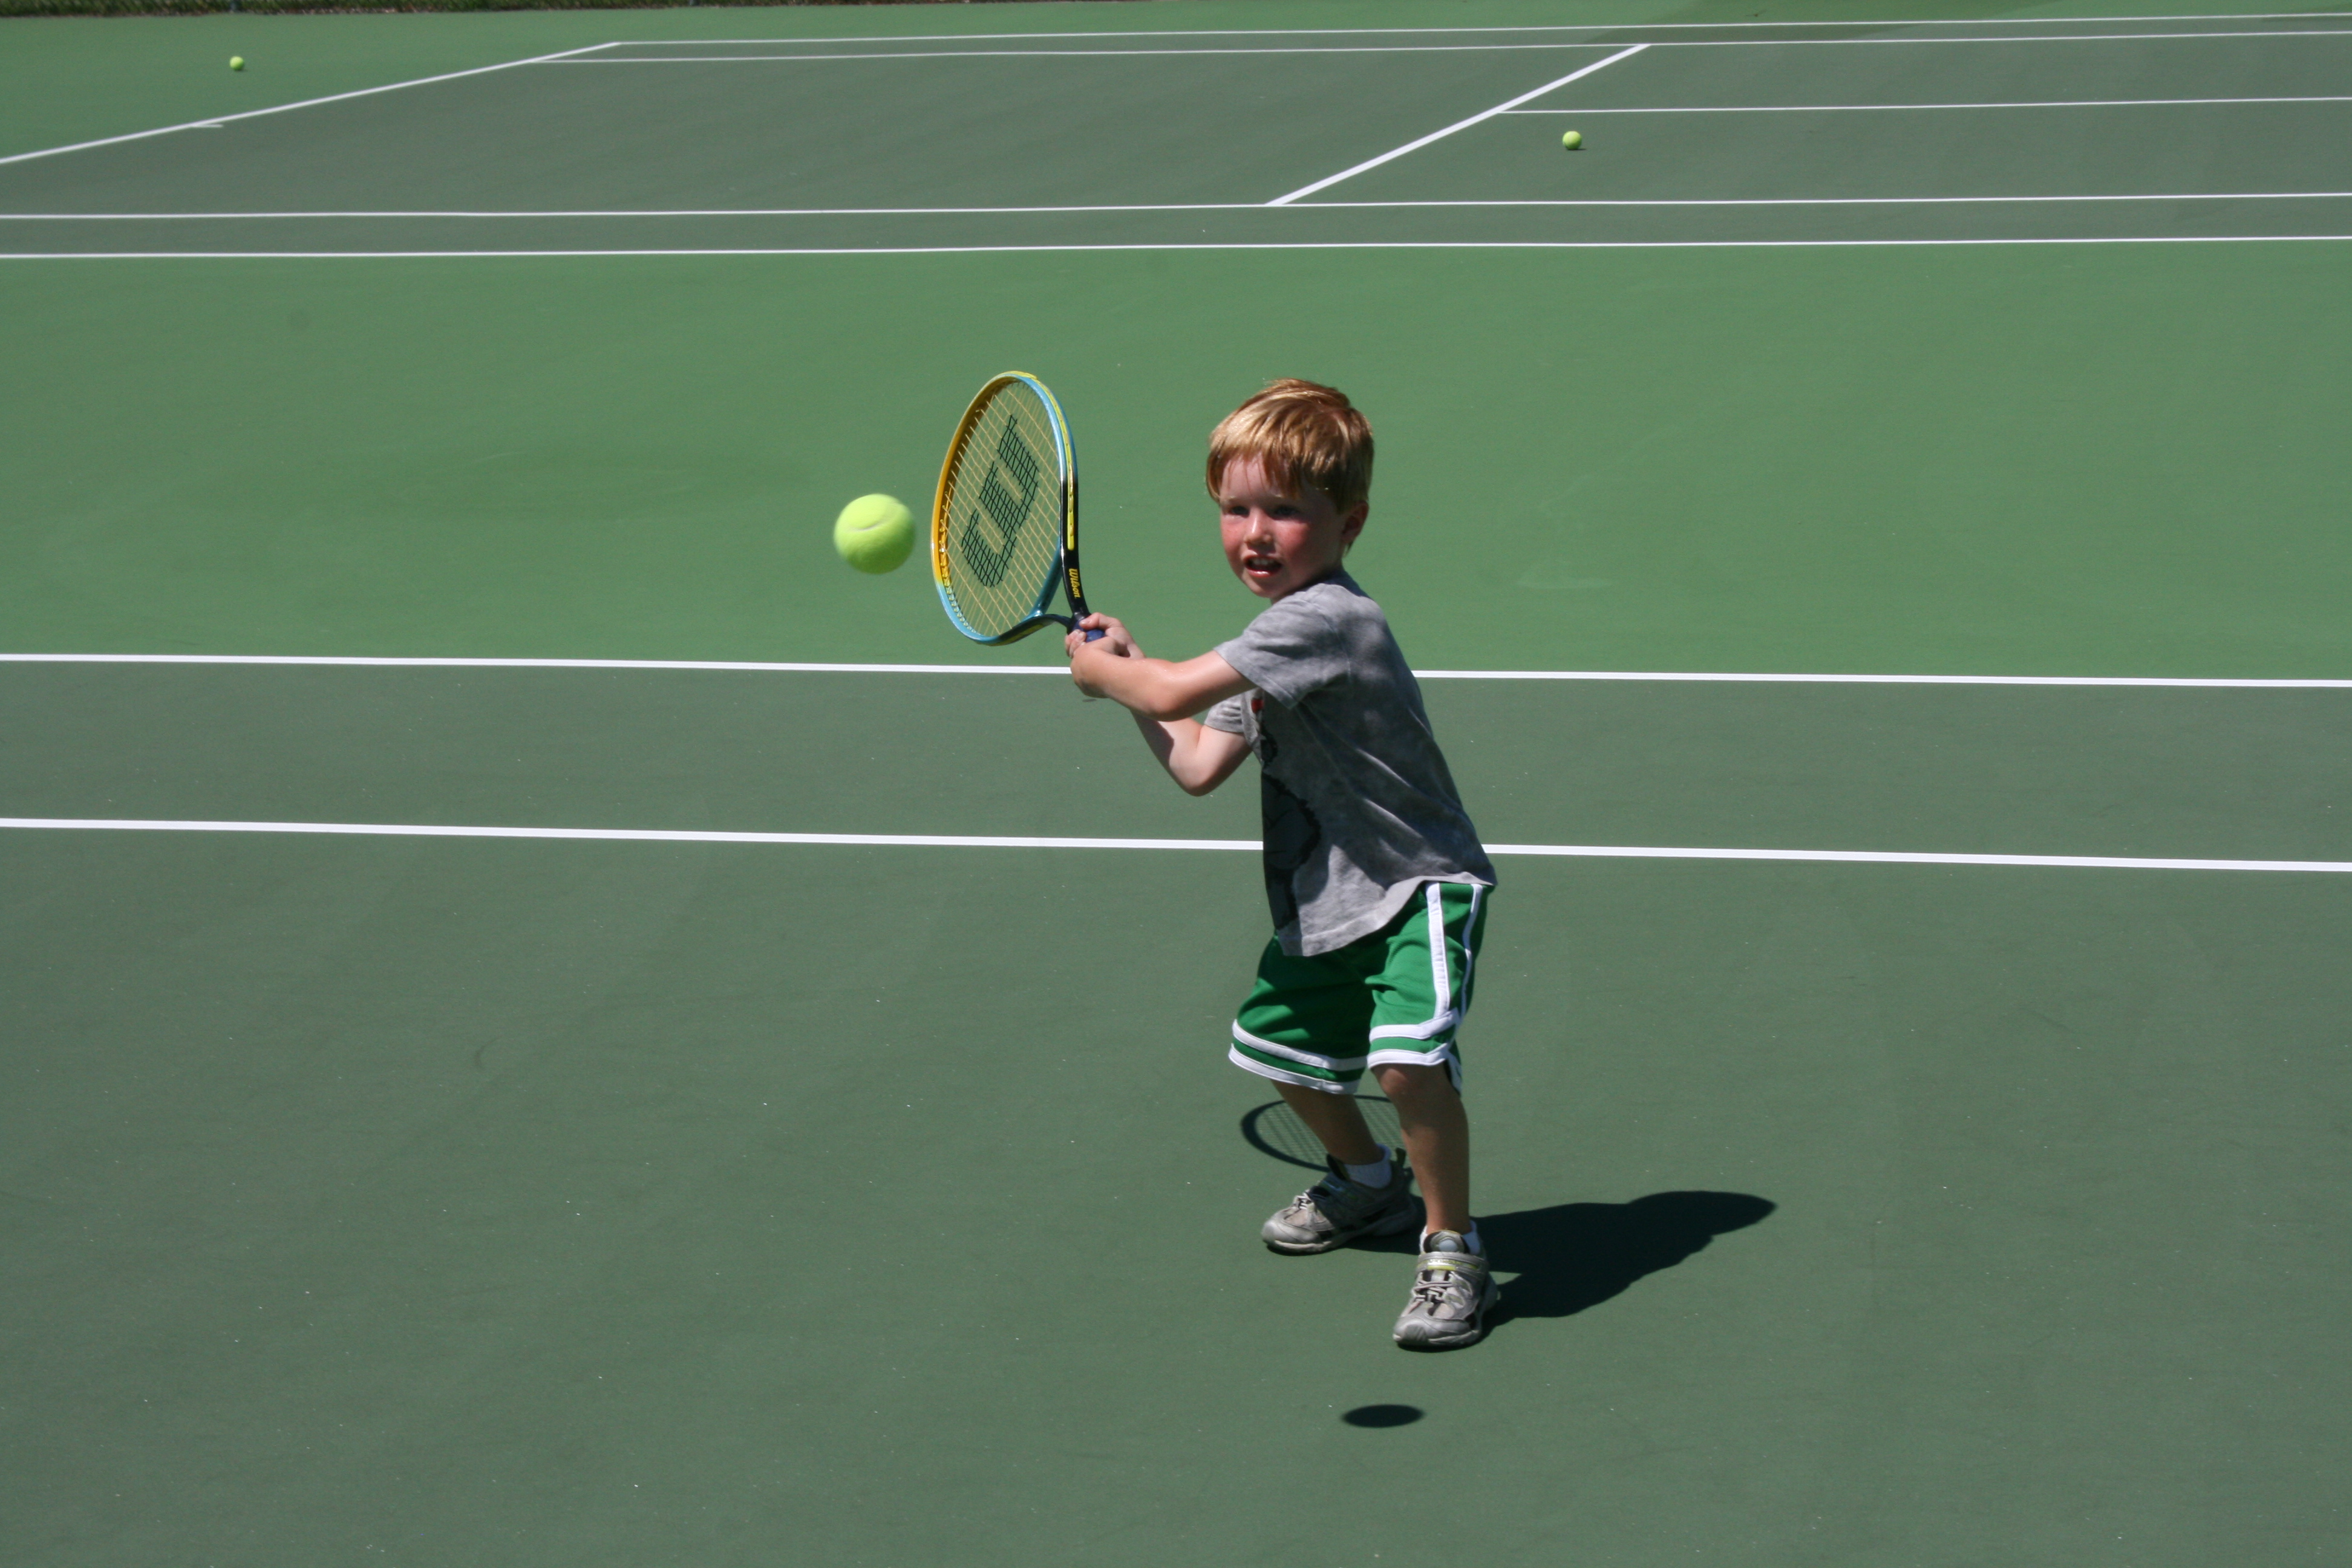 Finn Moynahan, 5, benefiting from the fitness program for toddlers at Soundview Sports Camp.